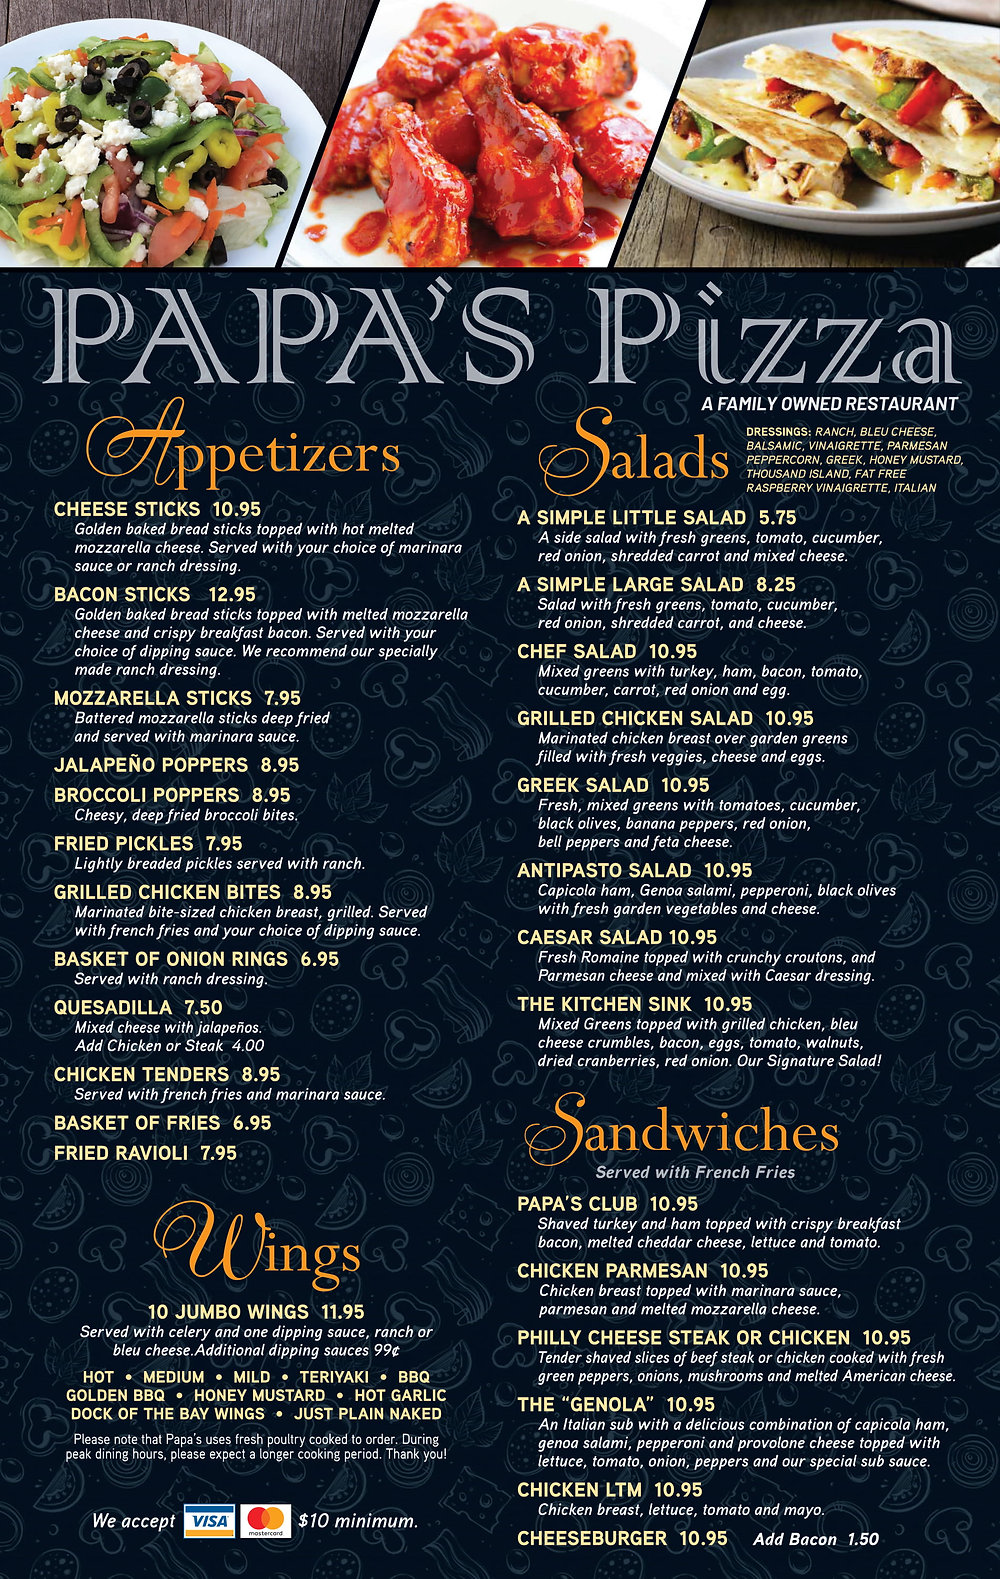 Papa's Pizza - Dine In Menu 4-21  PROOF